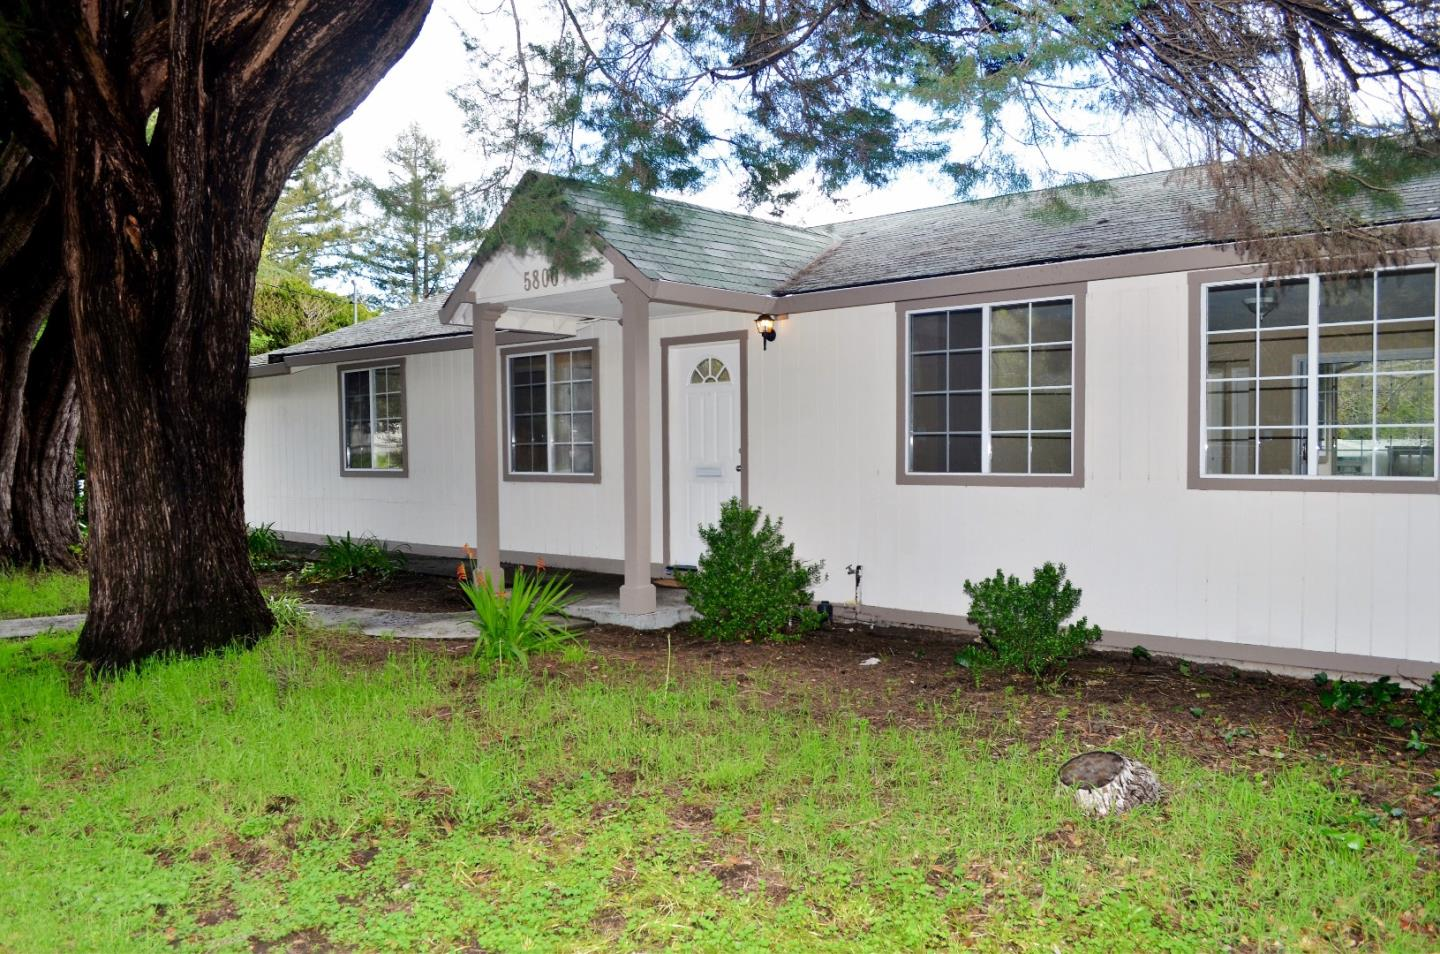 Multi-Family Home for Sale at 5800 Valley Drive Felton, California 95018 United States